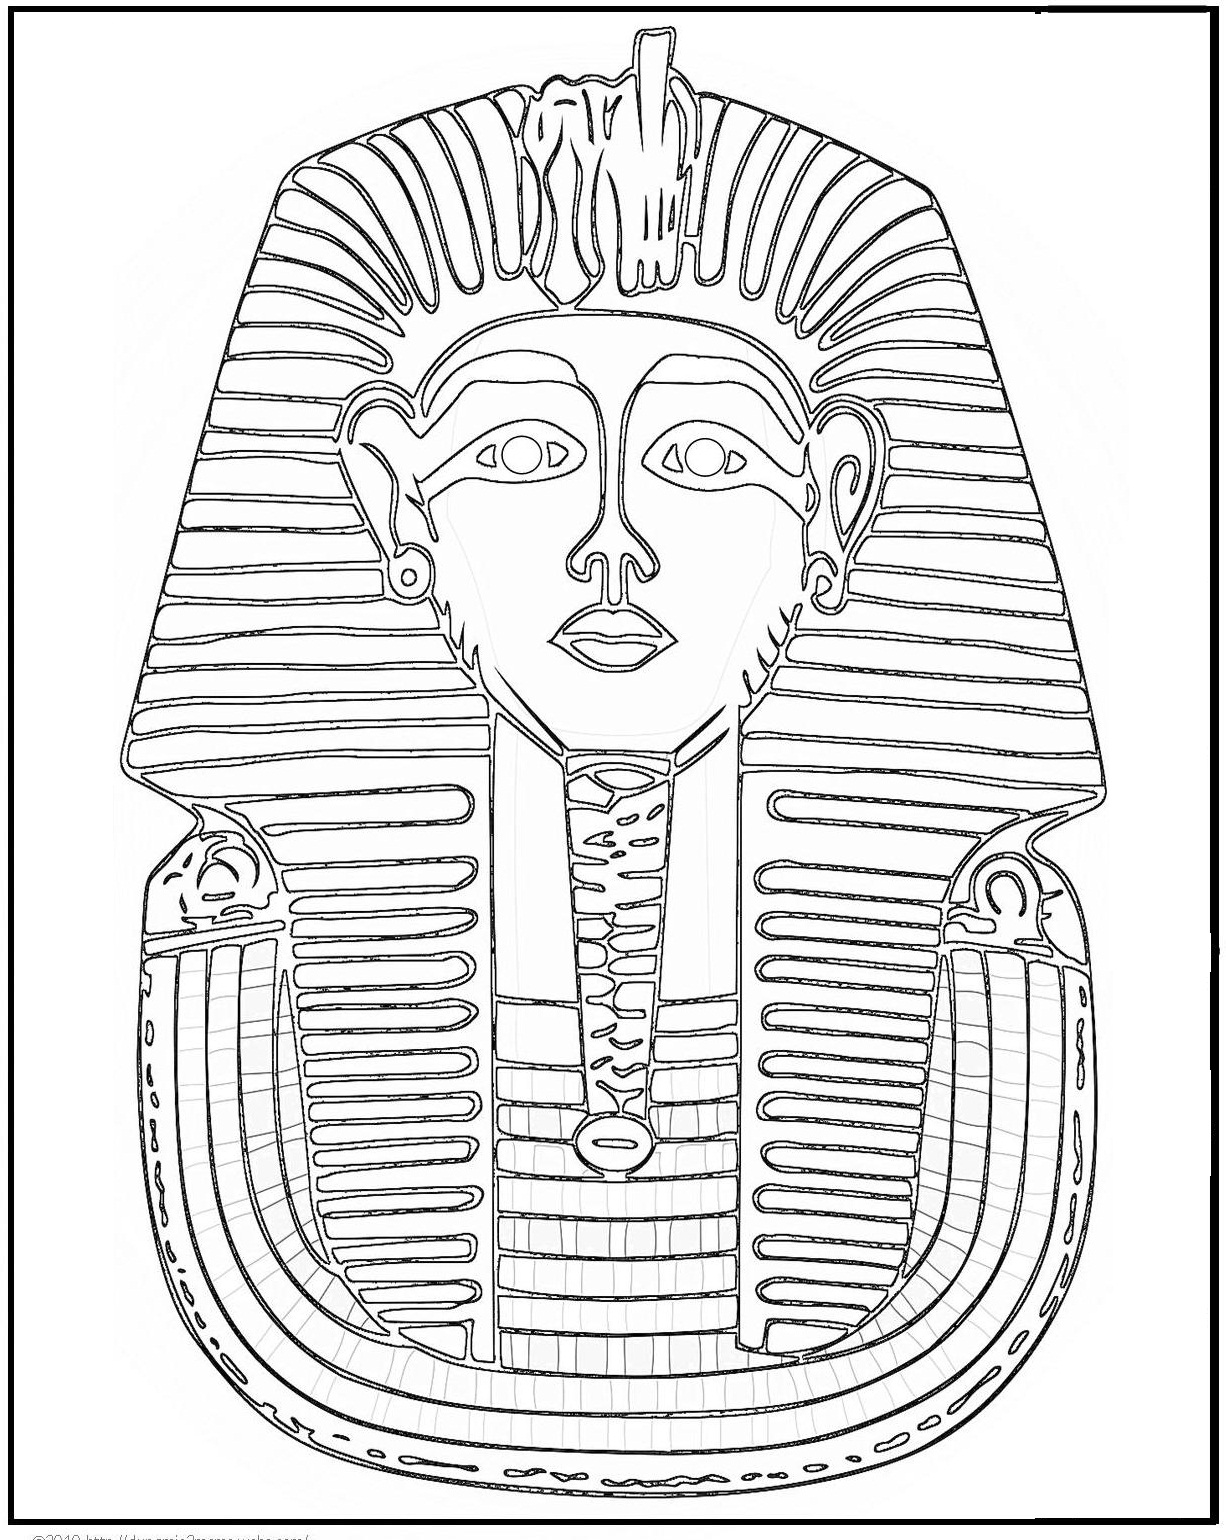 egypt free coloring pages - photo#12